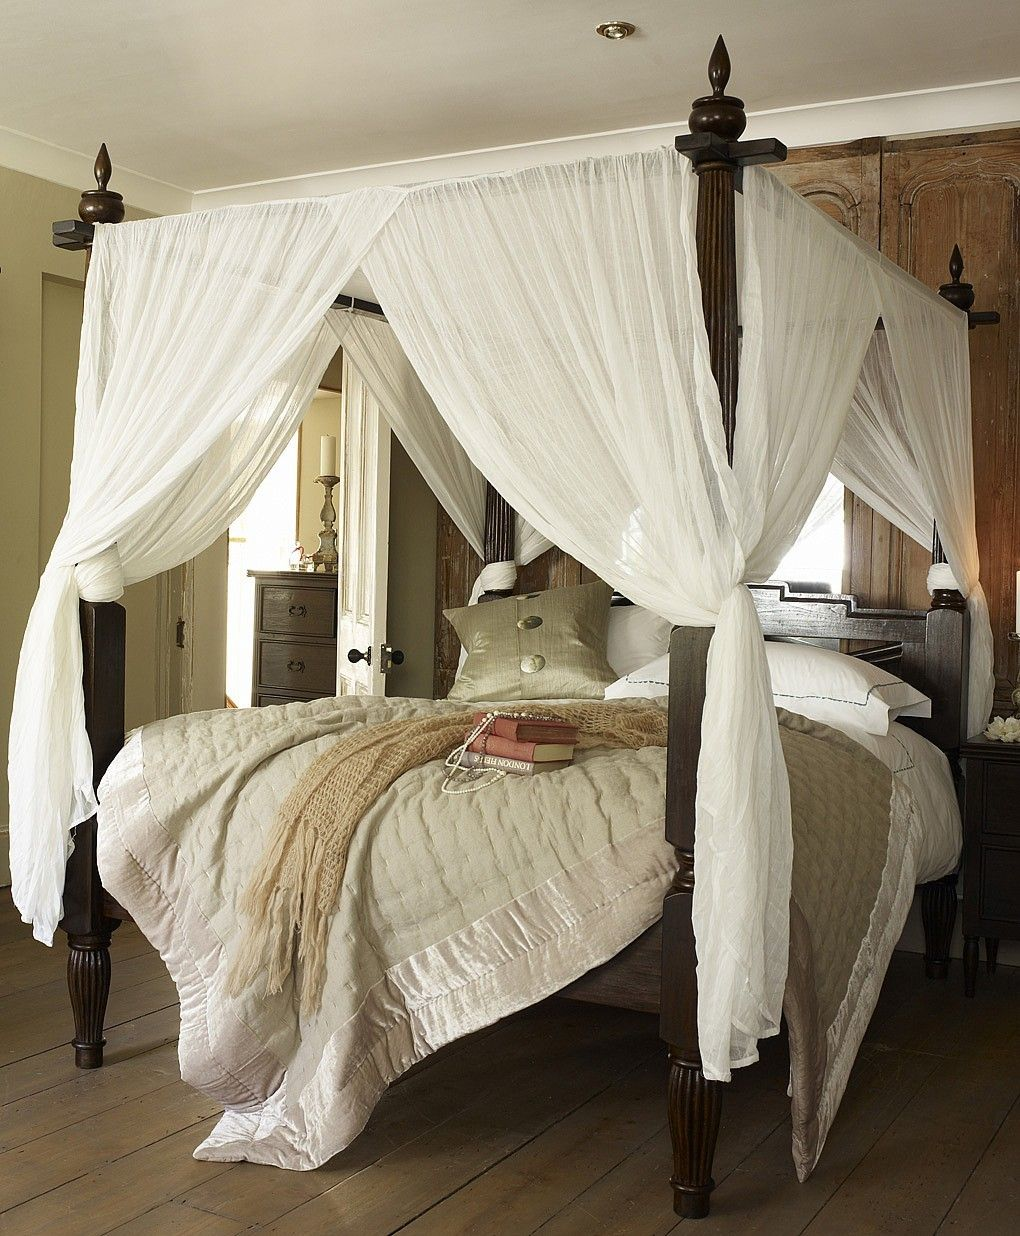 23 Canopy Bed Ideas Cozy Curtains Beige Popart Canopy Bedroom Sets Canopy Bedroom Bed Drapes Canopy bed drapes for sale